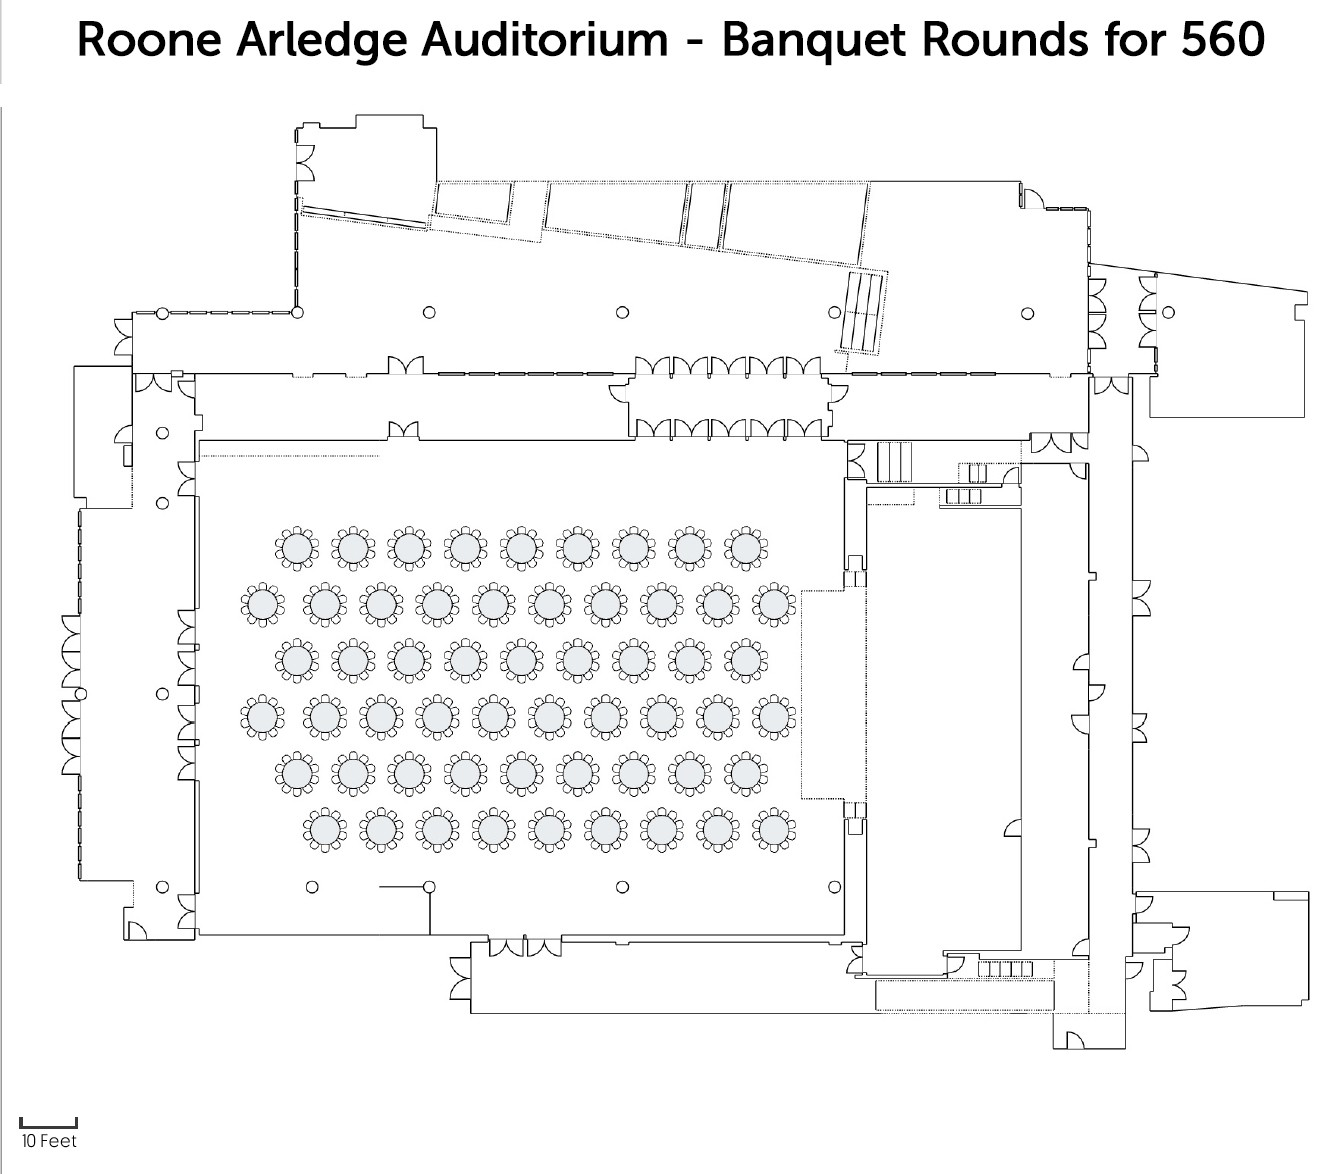 Roone Arledge - Banquet Rounds for 560